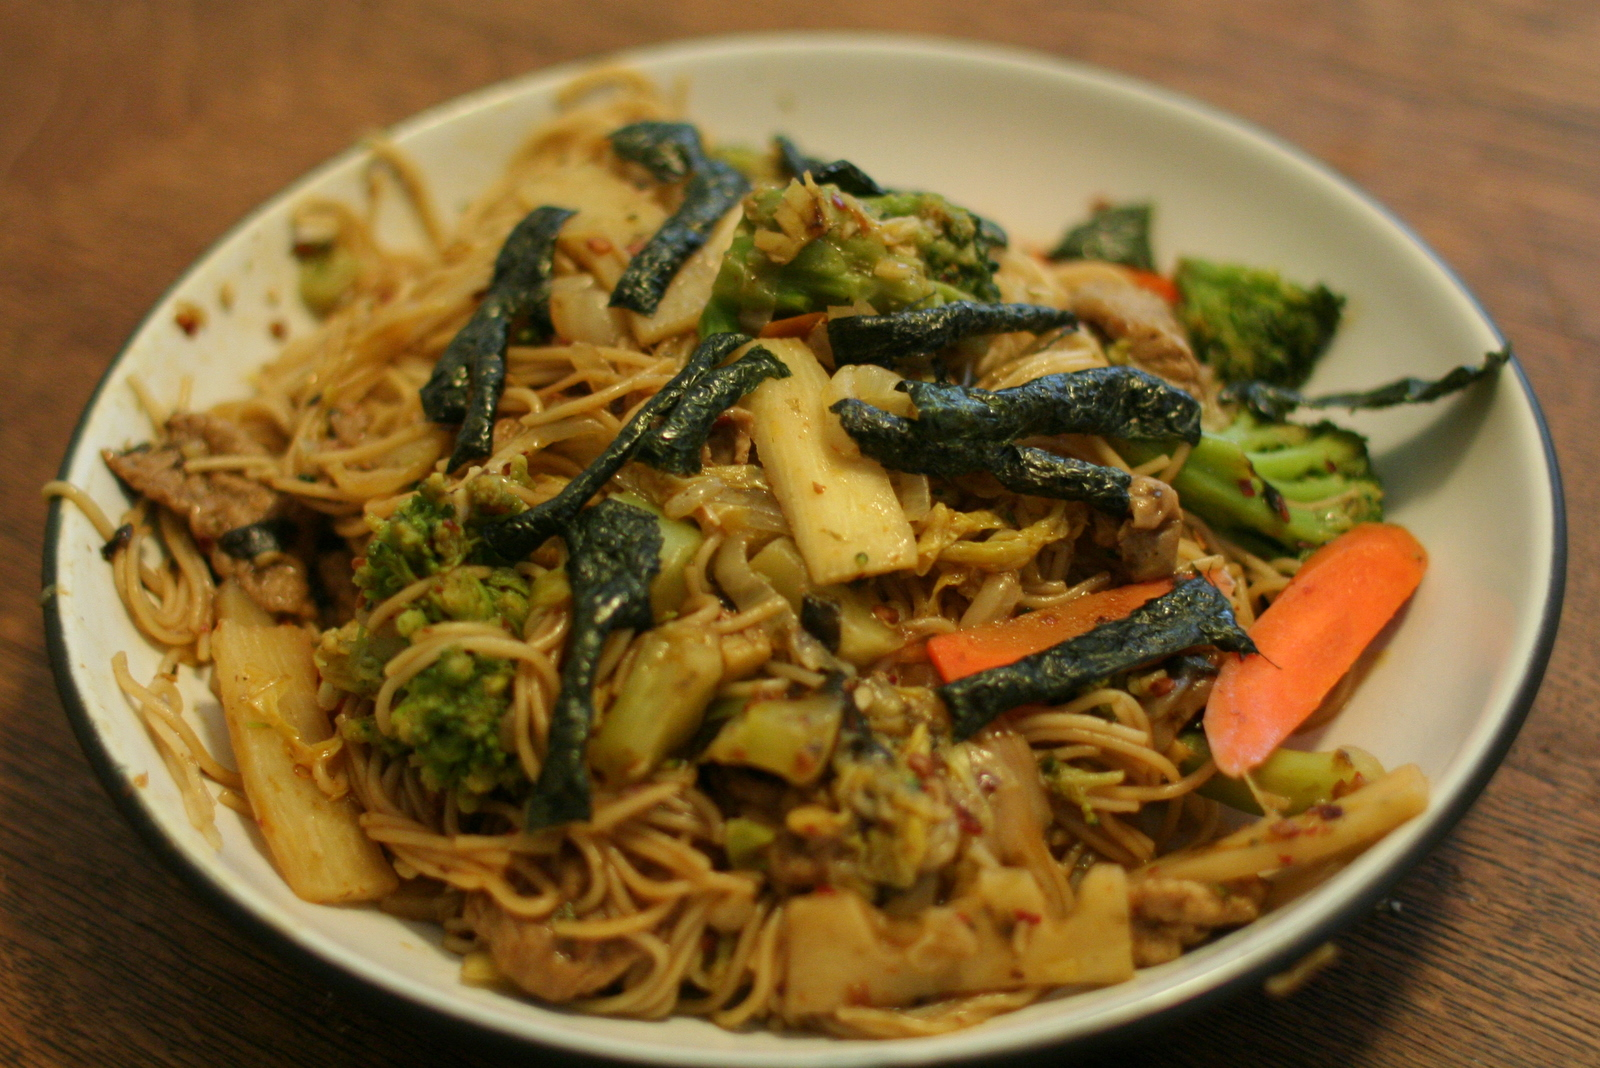 Somen noodles with napa cabbage and seitan   robfelty.com